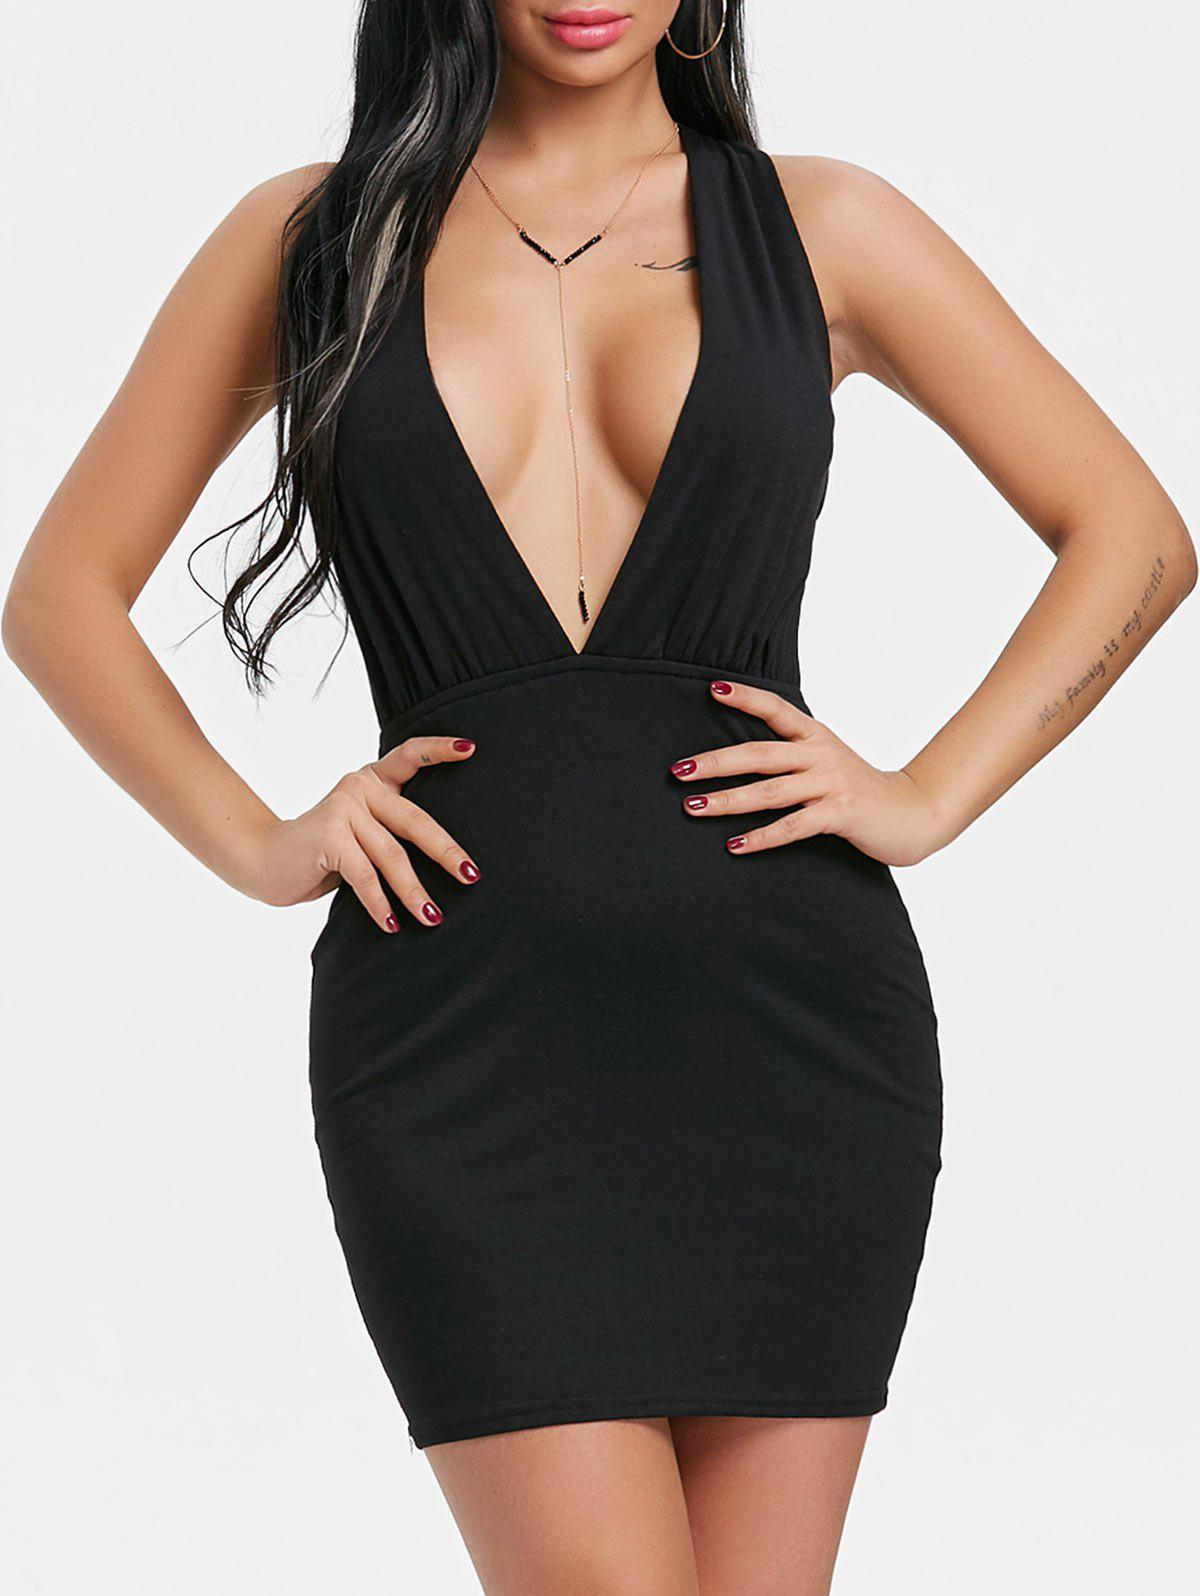 Plunging Neck Strappy Back Dress - BLACK L